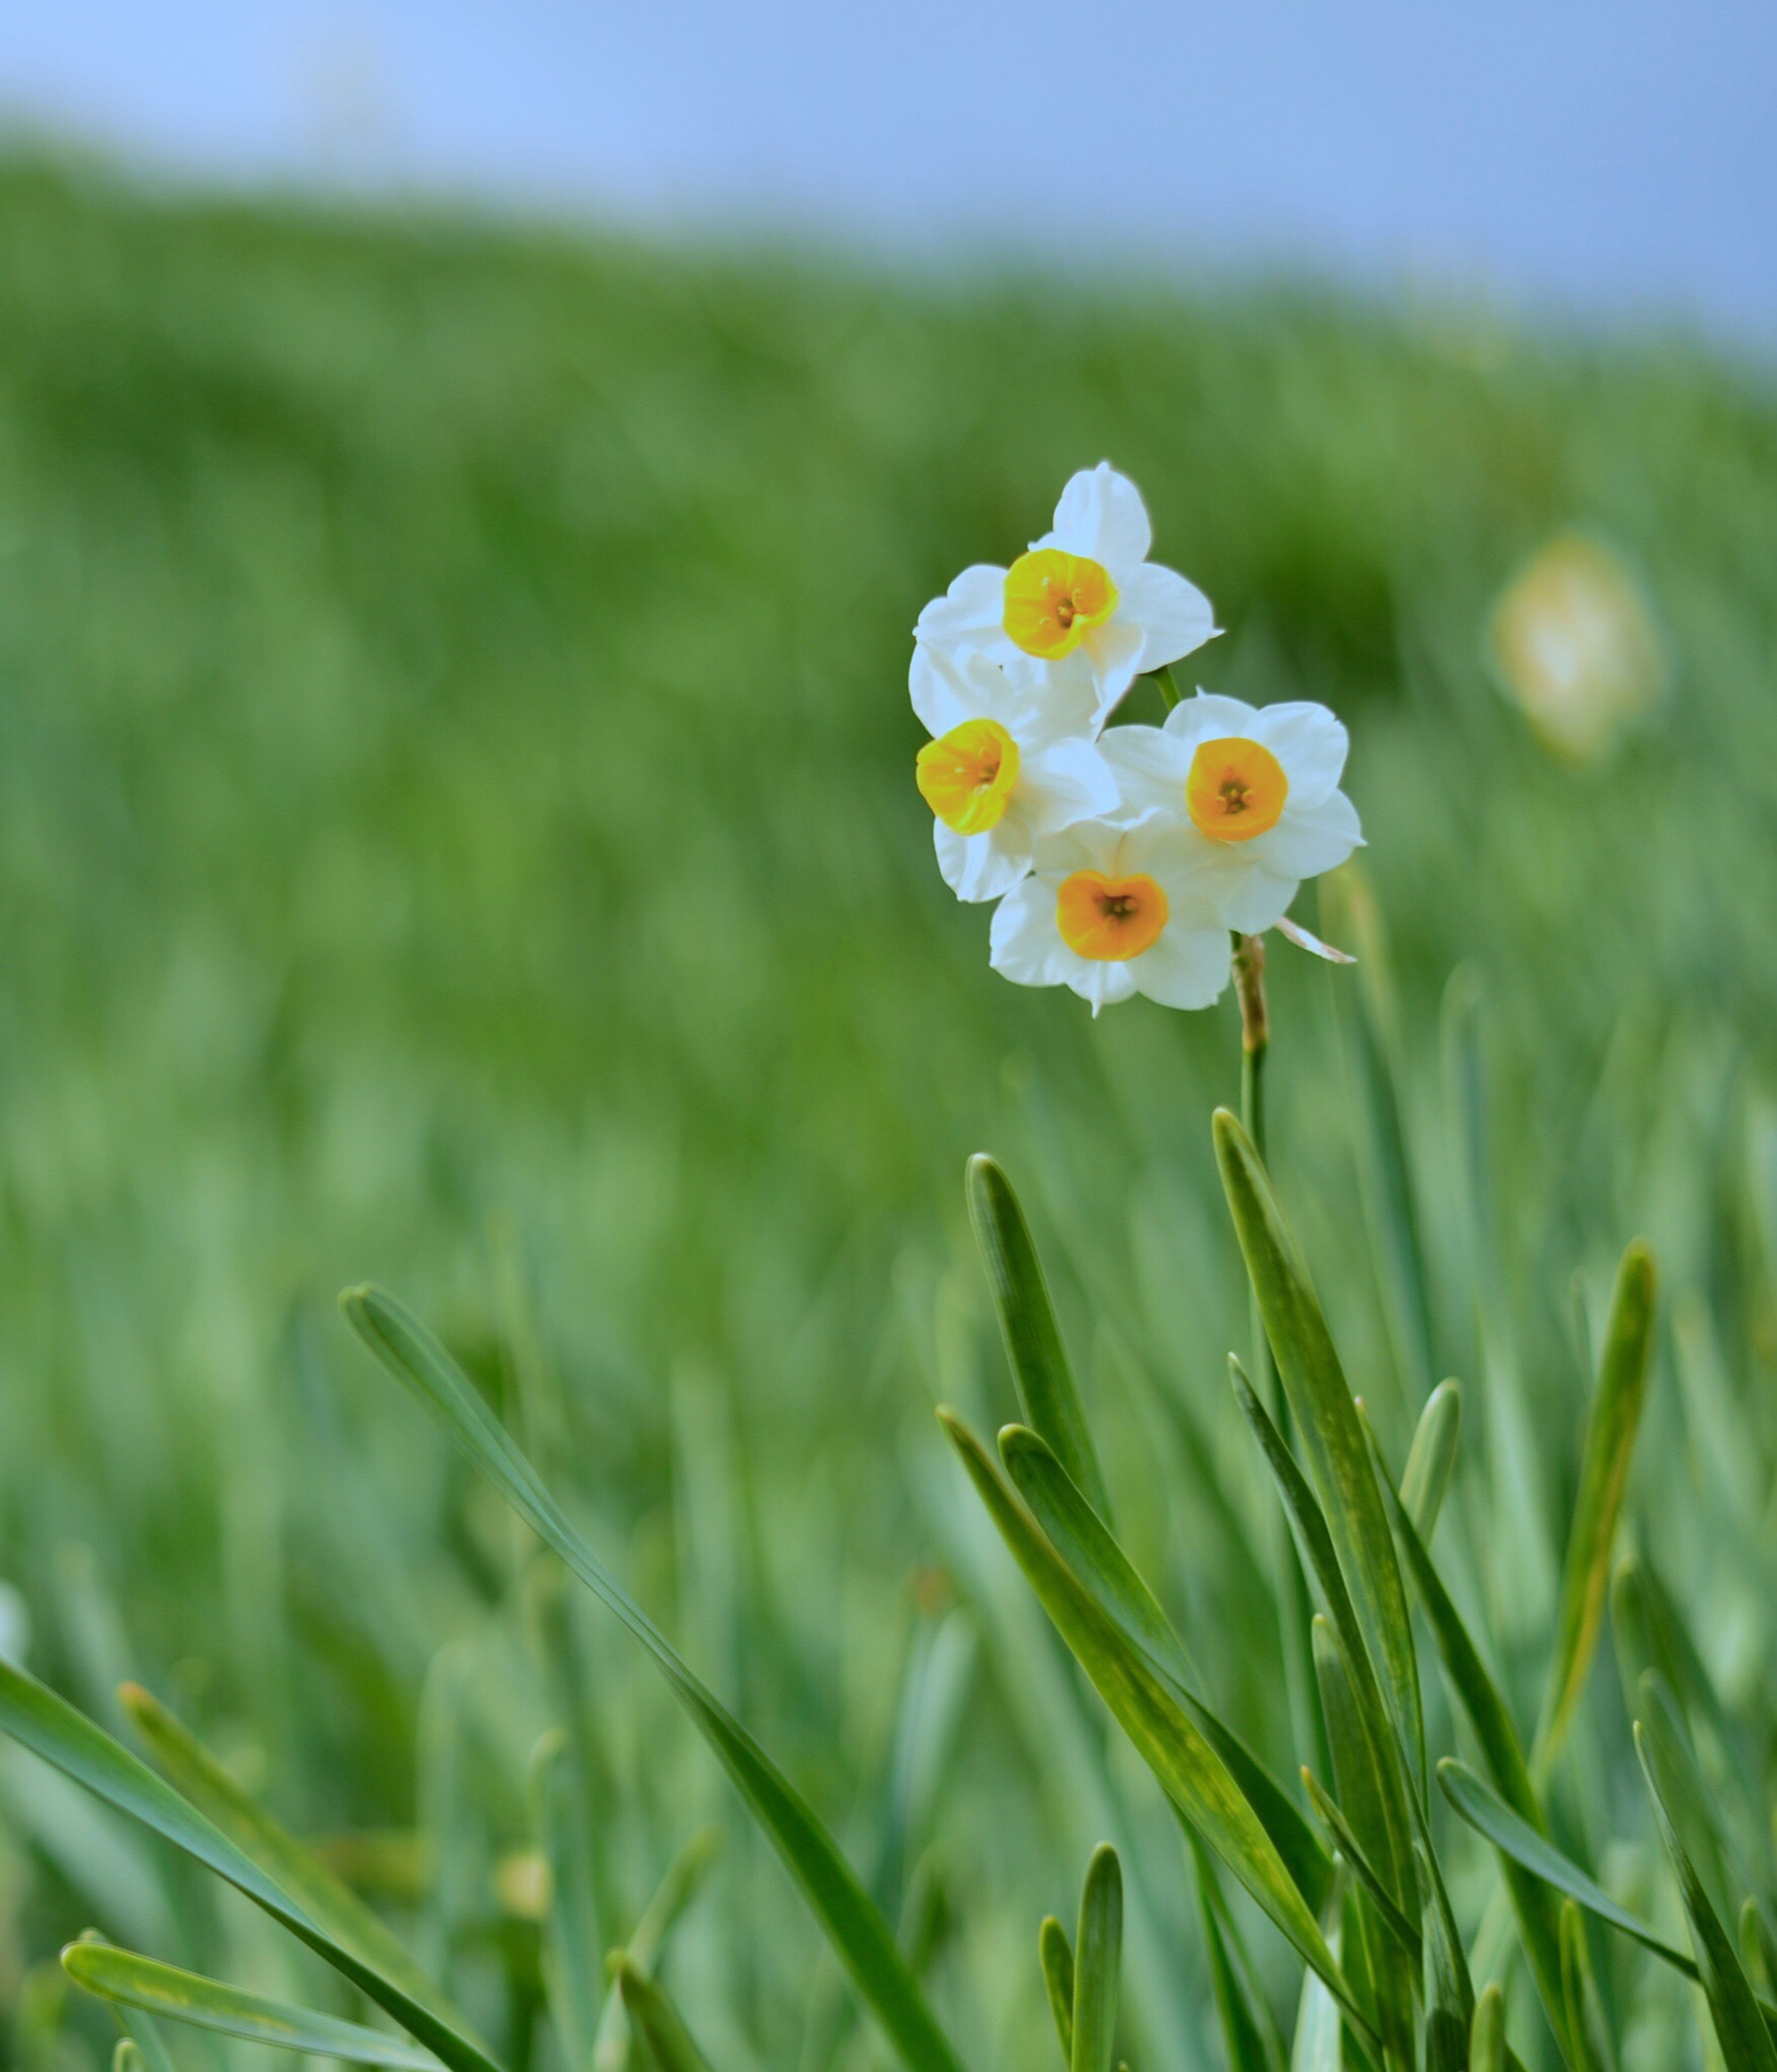 flower, freshness, growth, fragility, field, beauty in nature, petal, focus on foreground, flower head, blooming, nature, plant, grass, green color, close-up, yellow, white color, in bloom, selective focus, stem